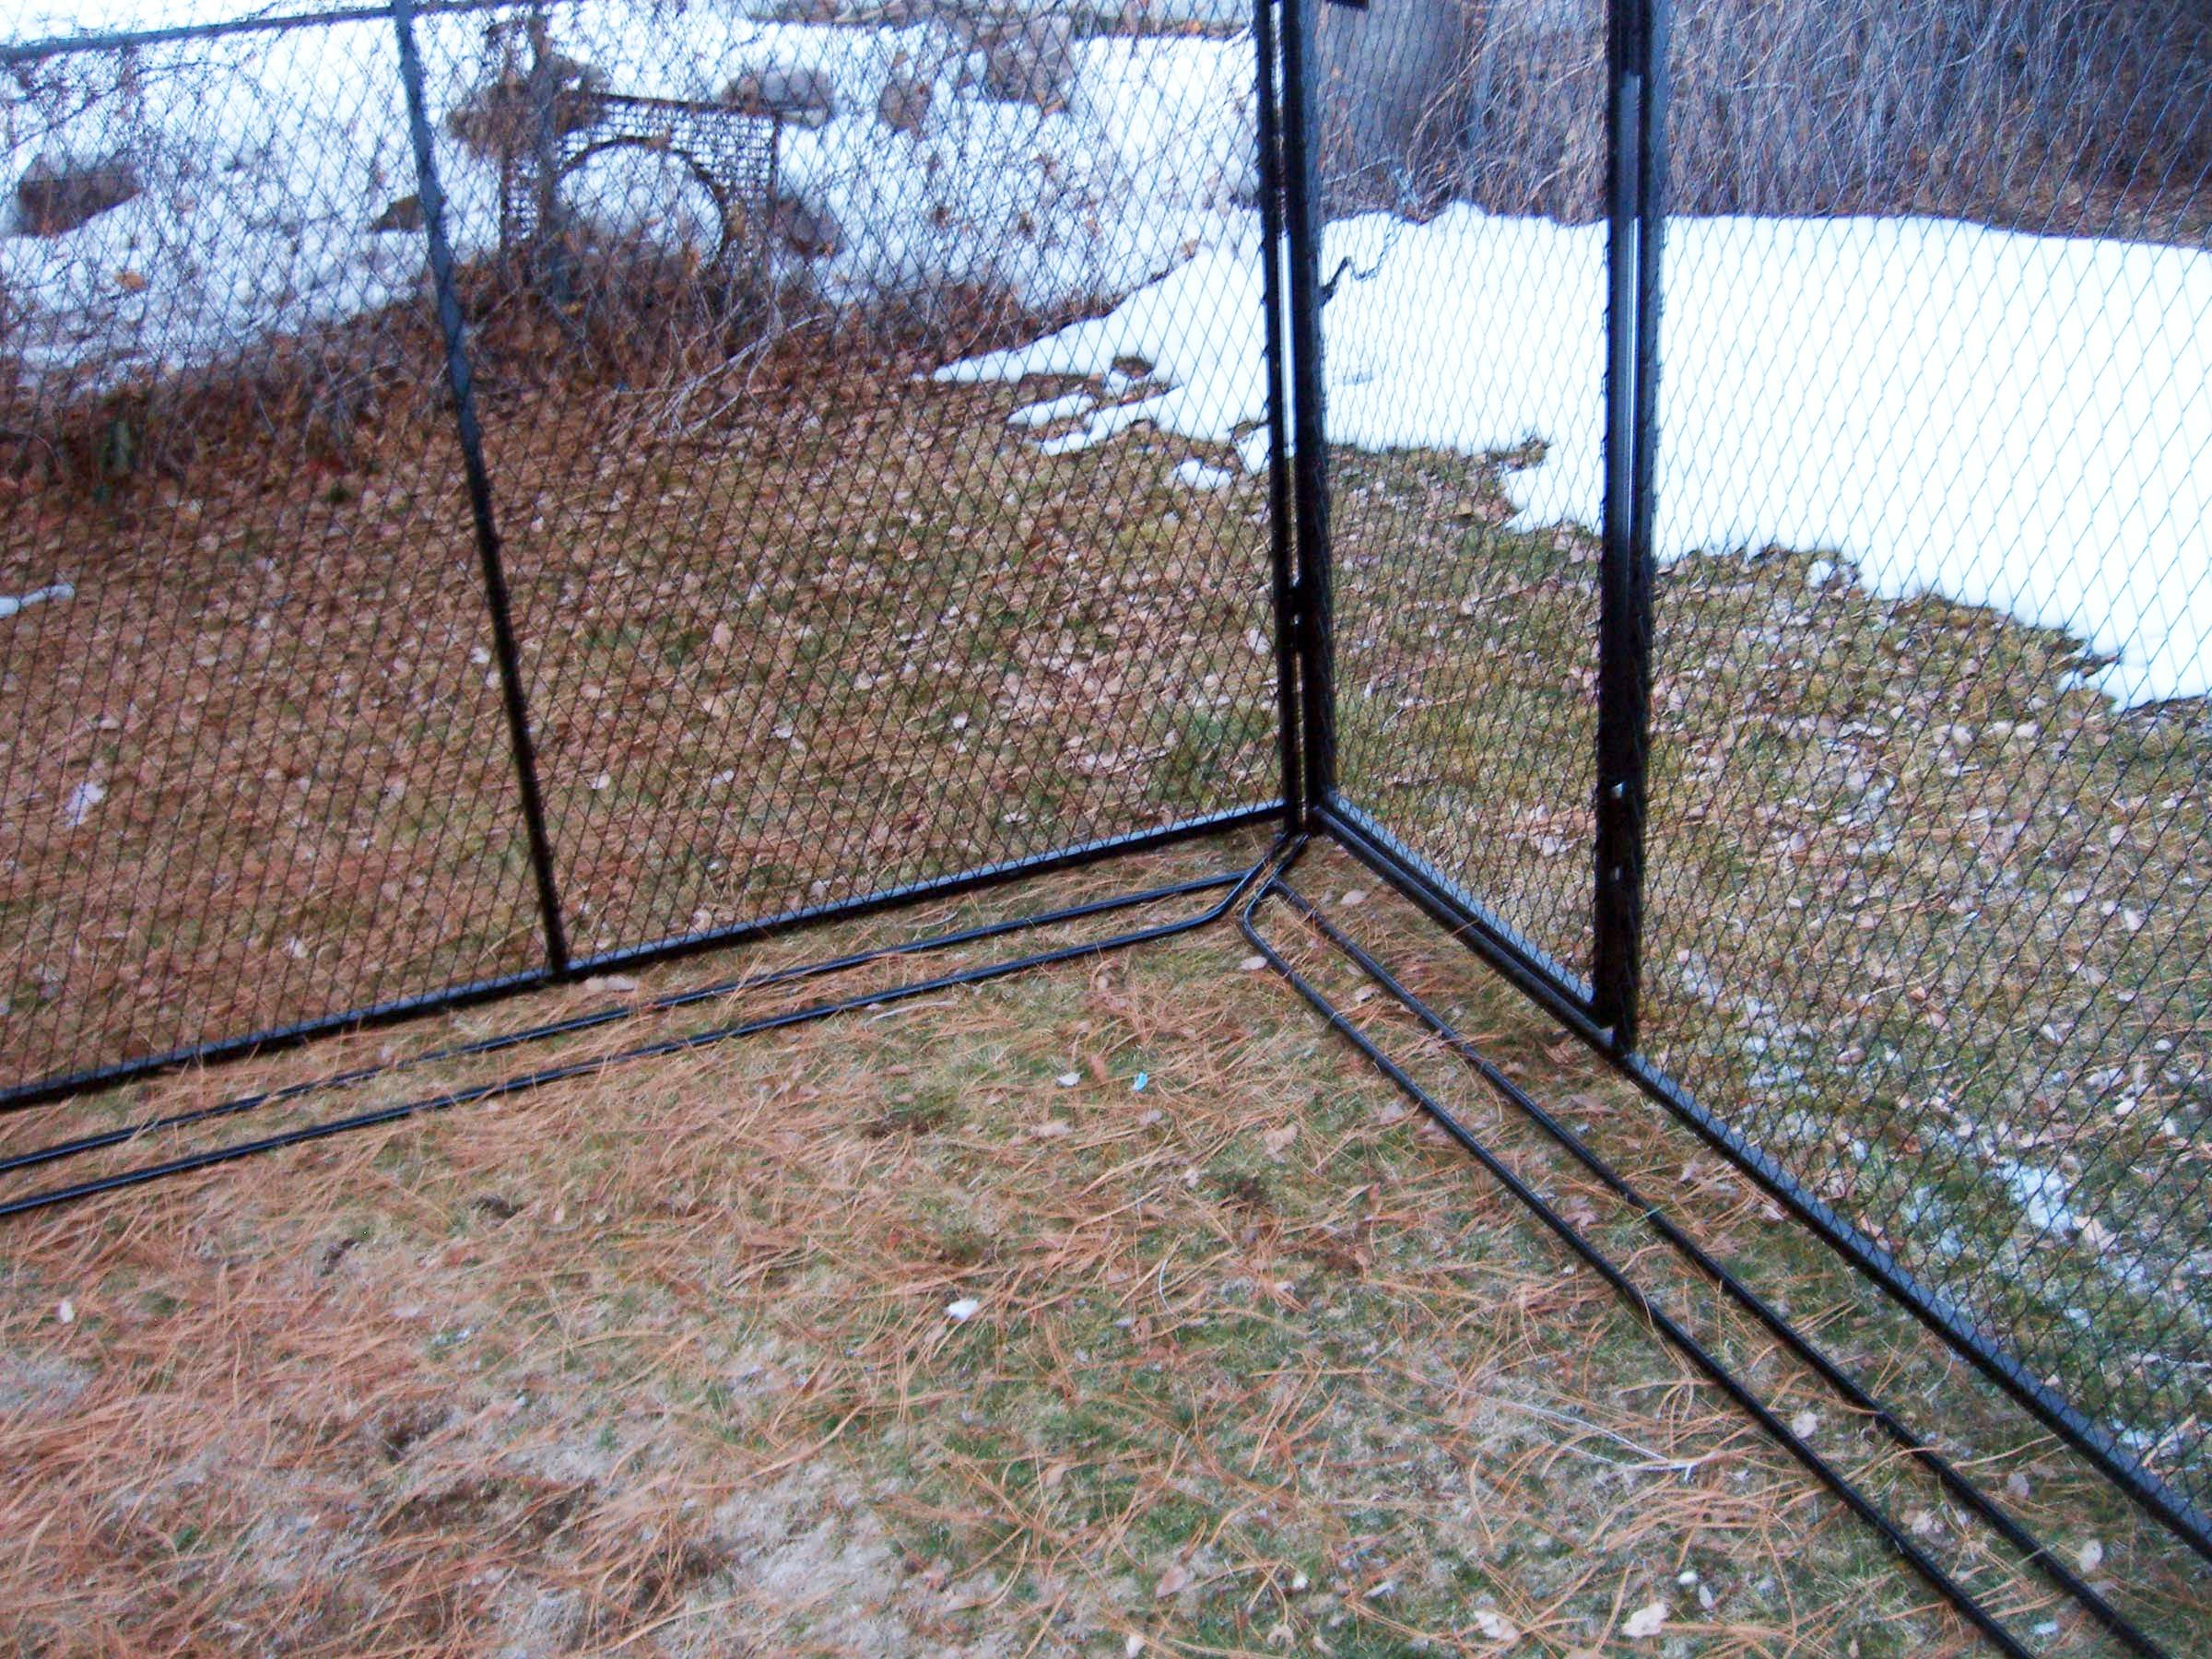 Antidigging bars preventing your dog from digging out